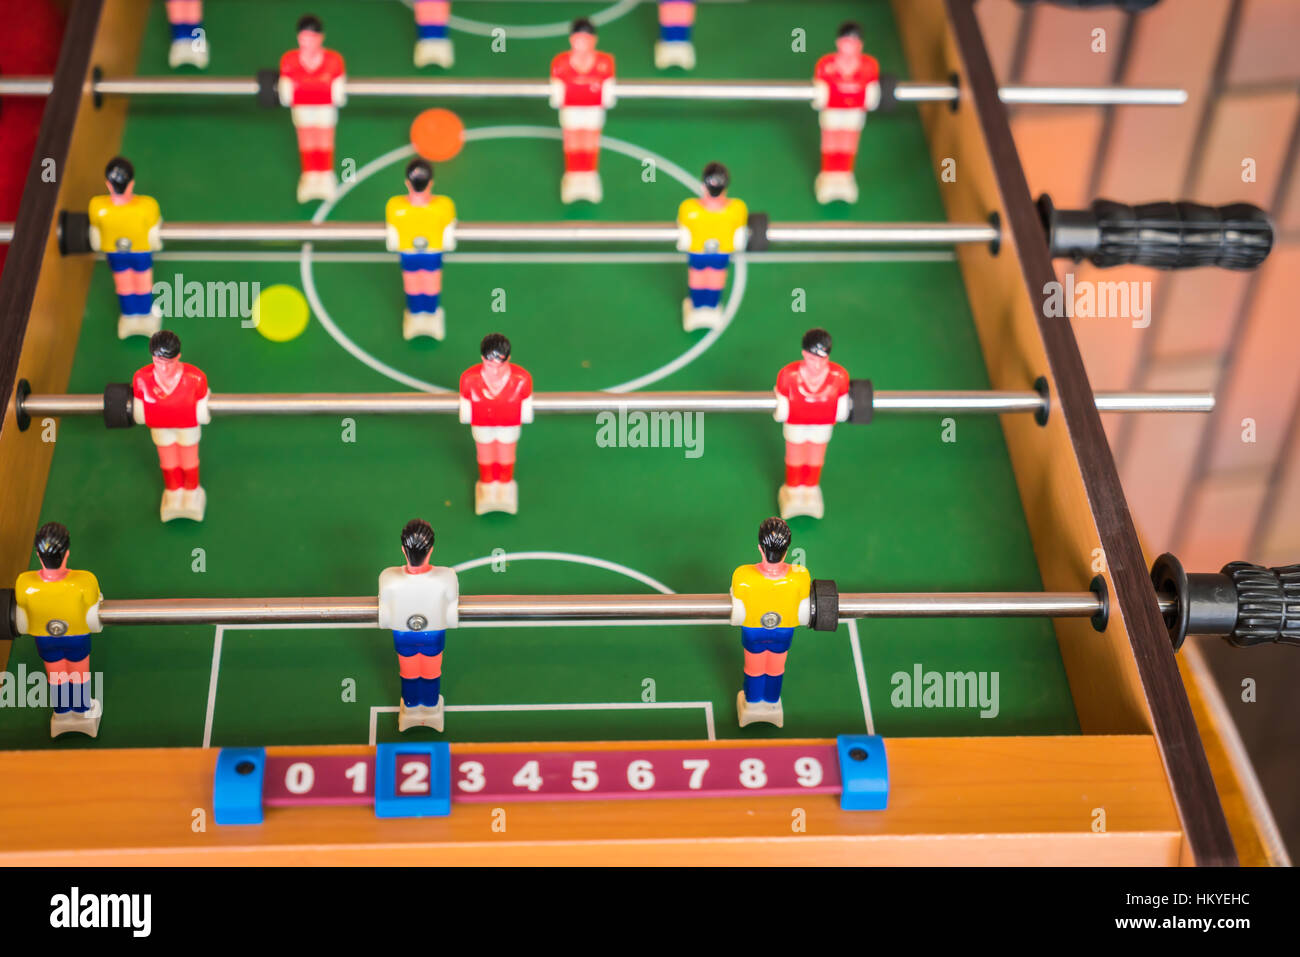 Football table game - Stock Image